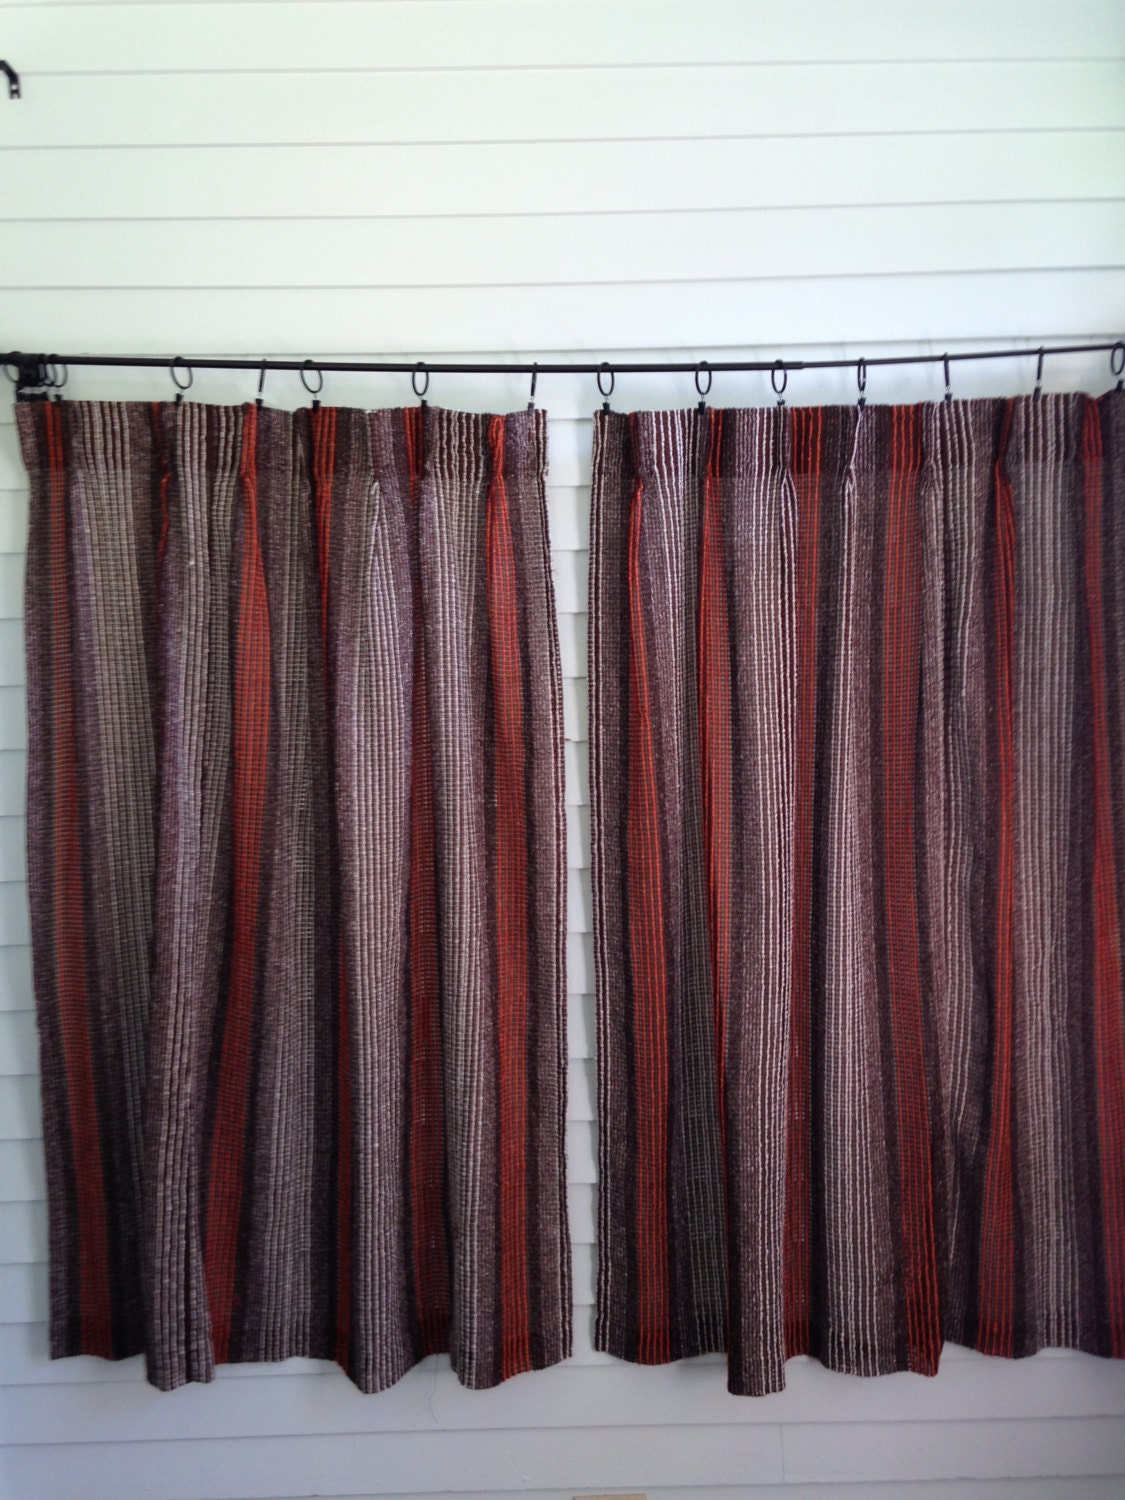 Vintage Brown Sheer Curtains Brown Orange White Curtain